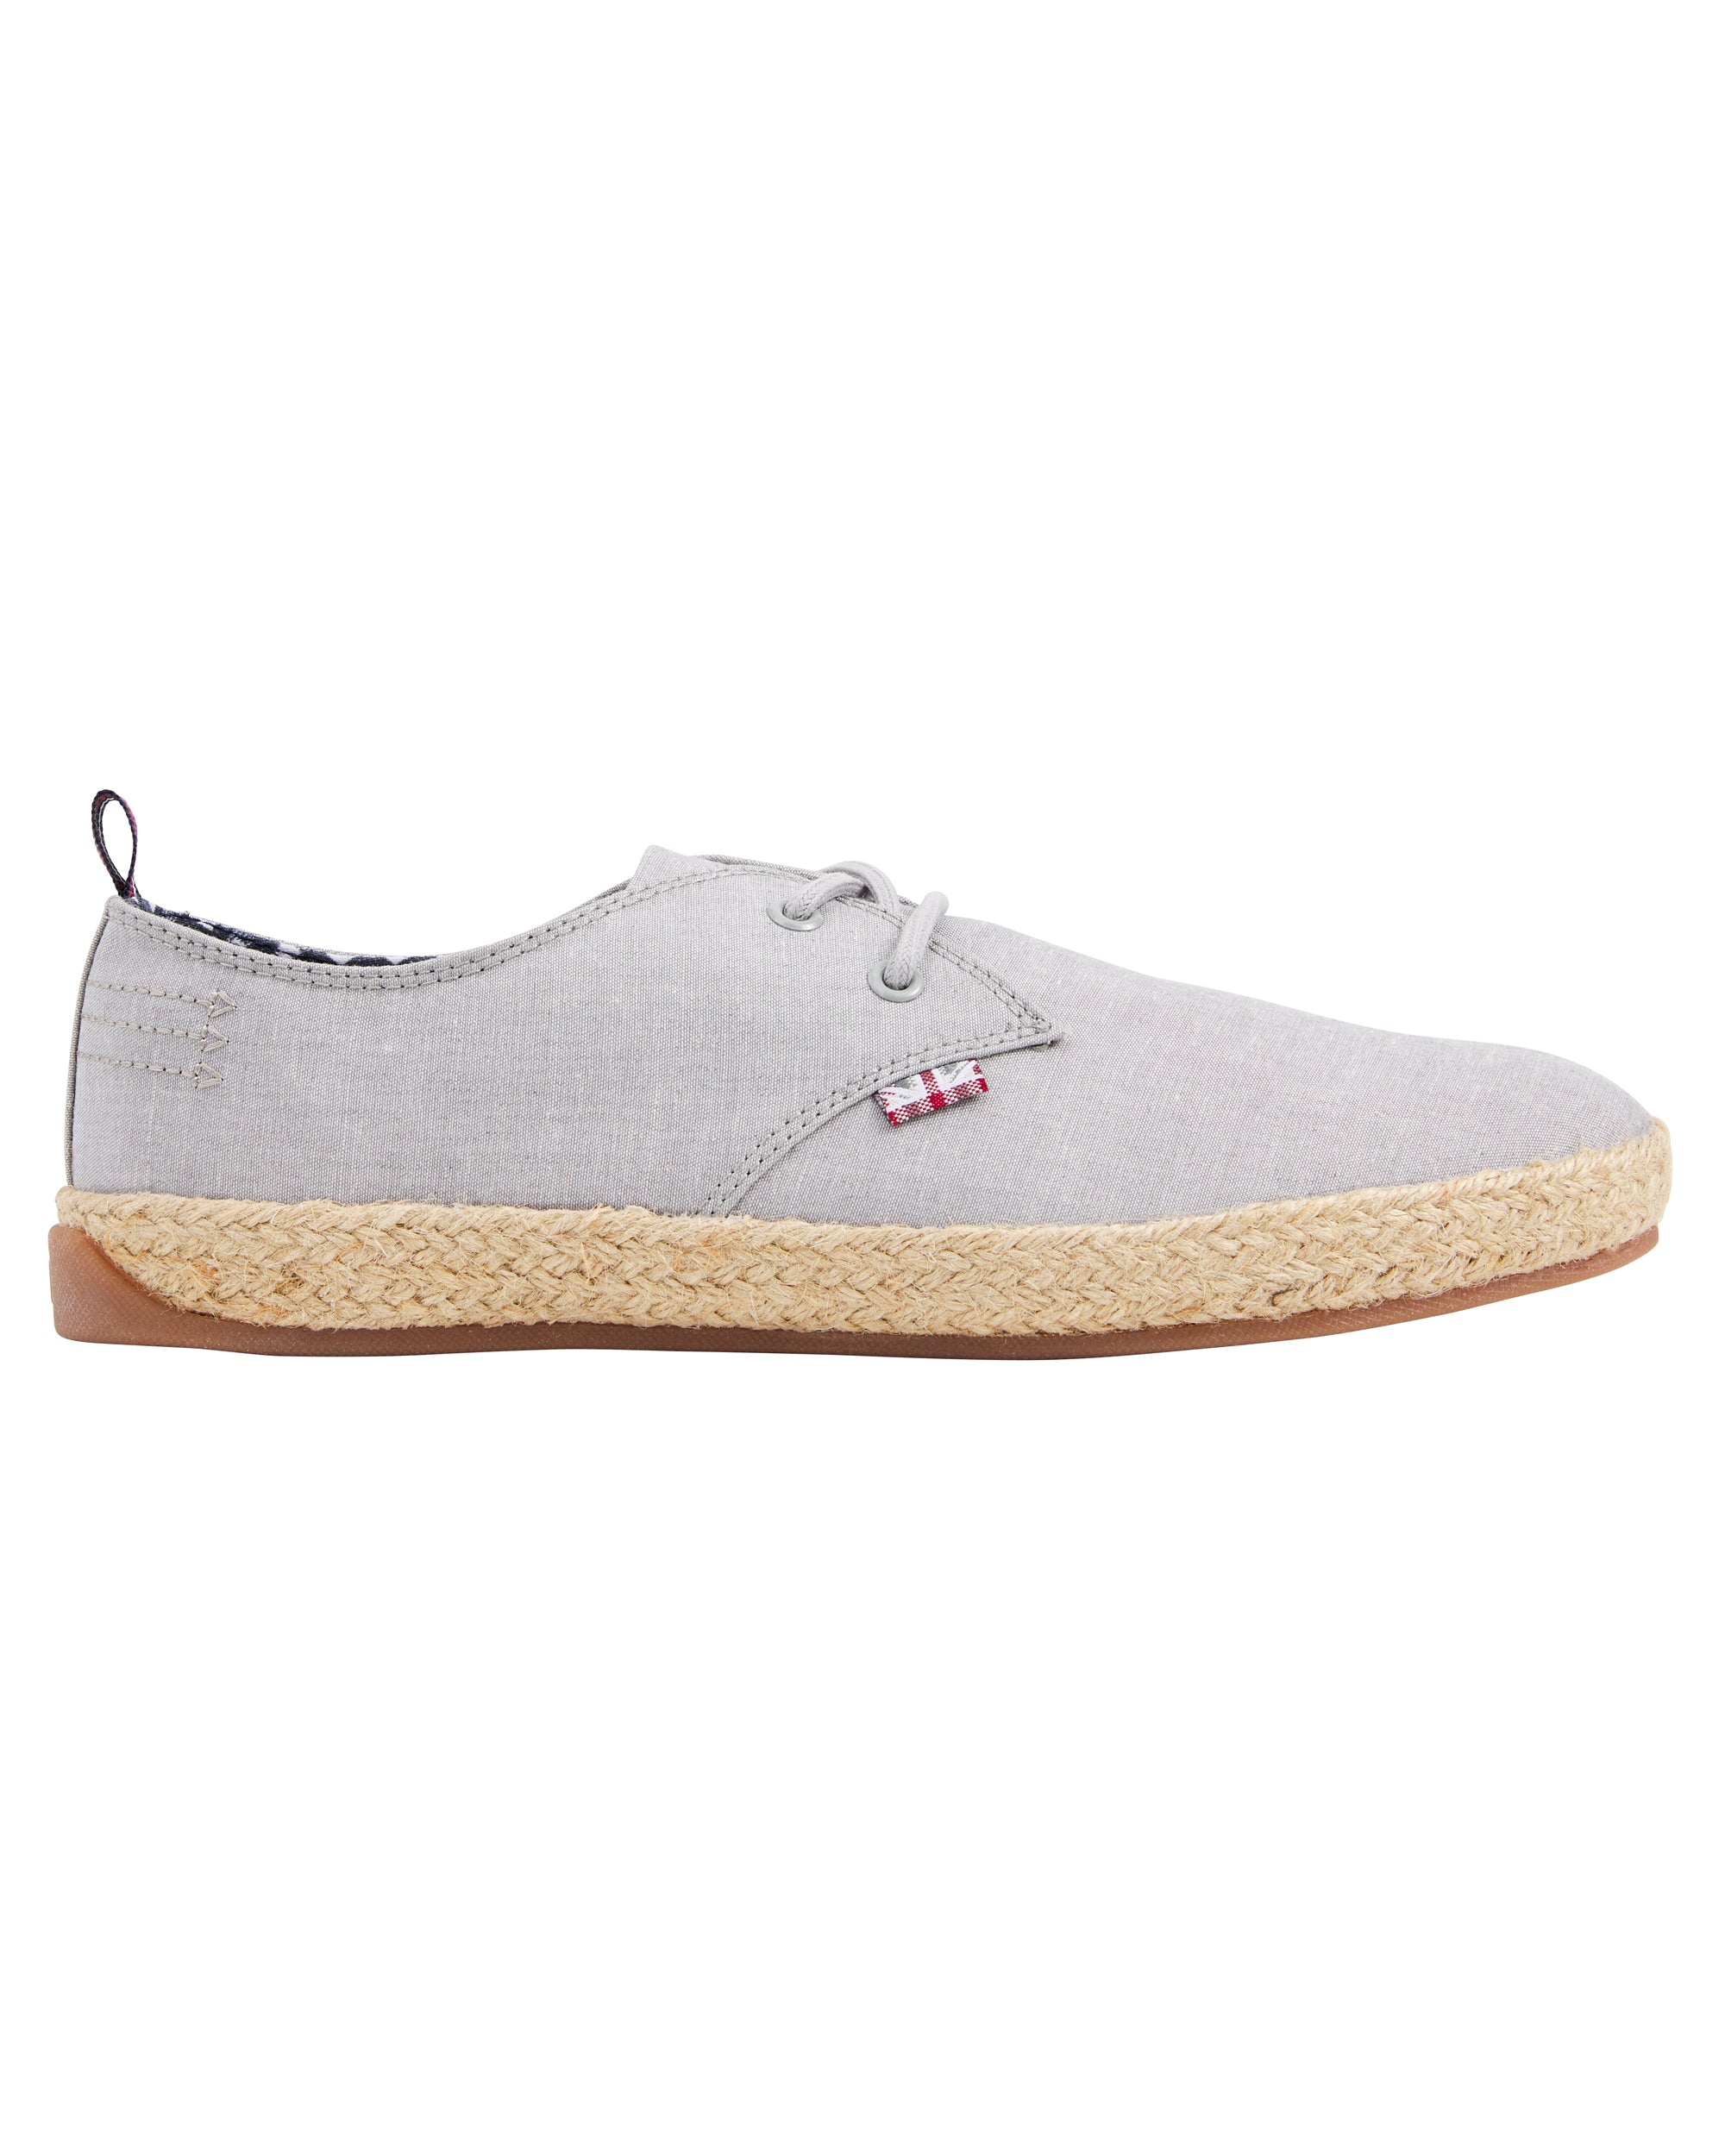 New Prill Two-Tone Oxford Sneaker - Grey